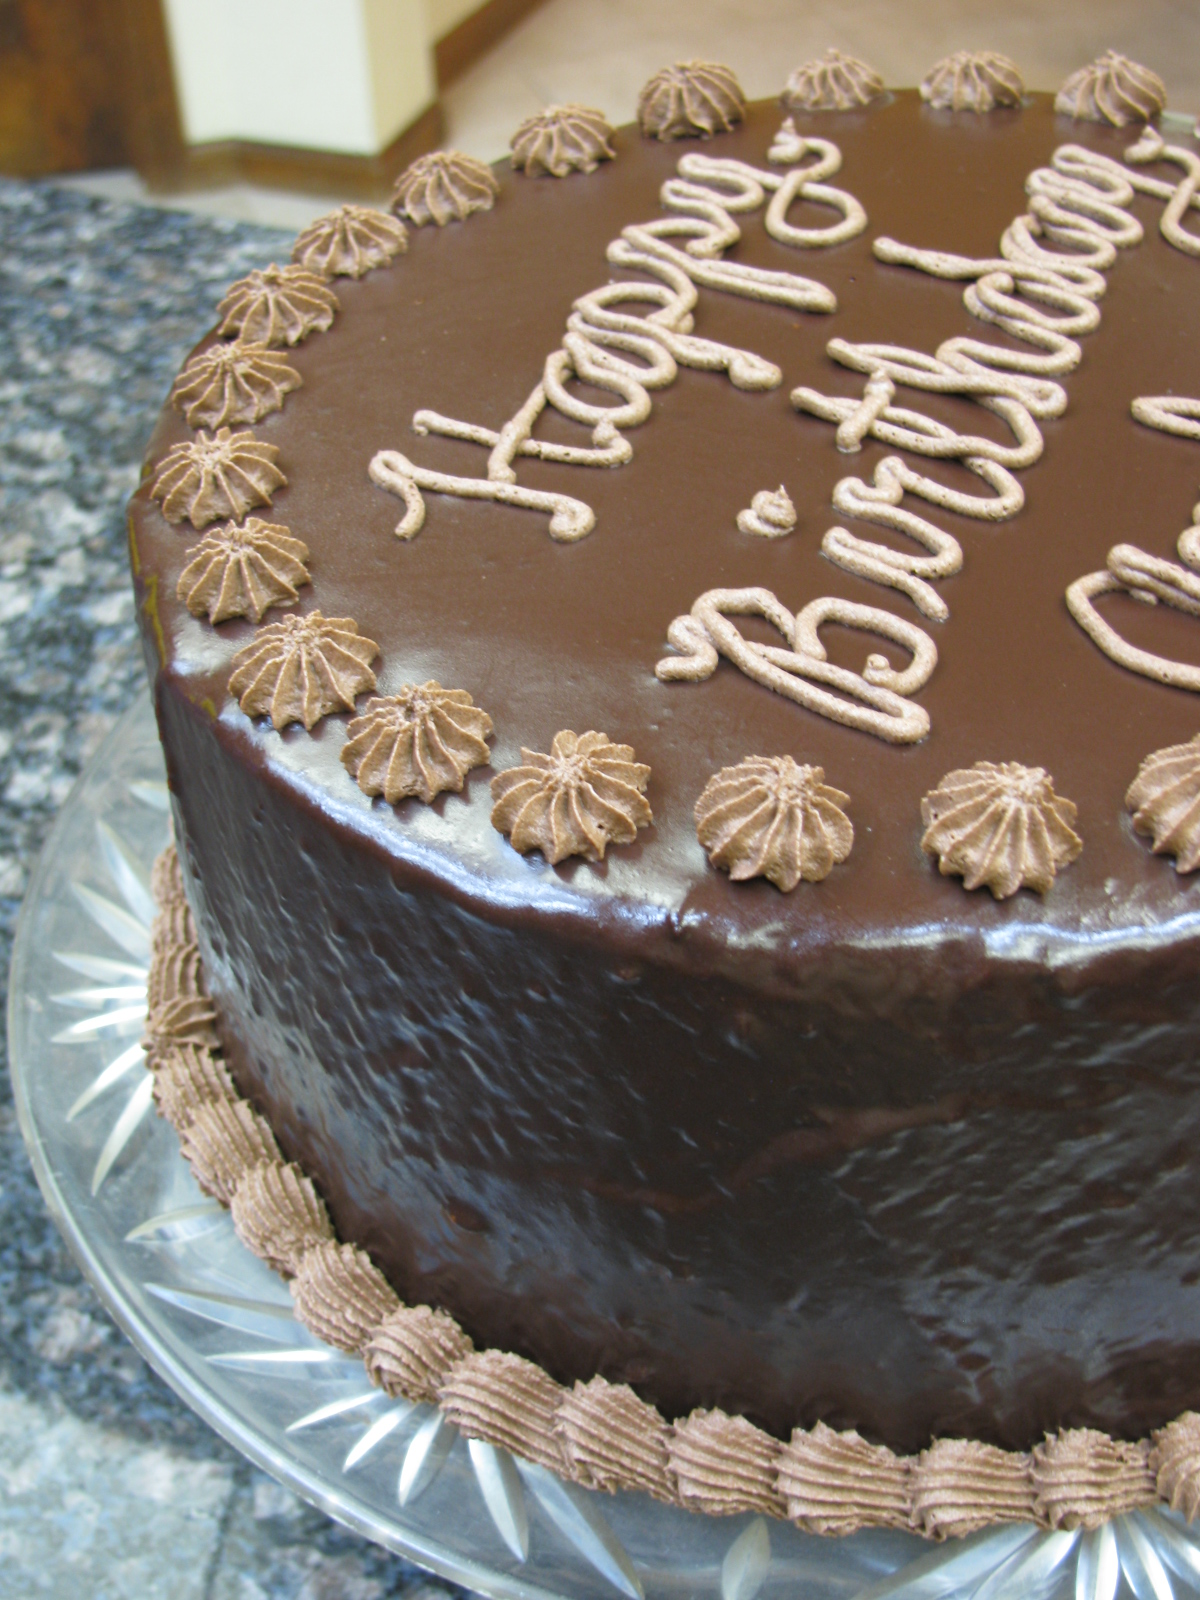 Birthday Cake With Chocolate Buttercream Frosting